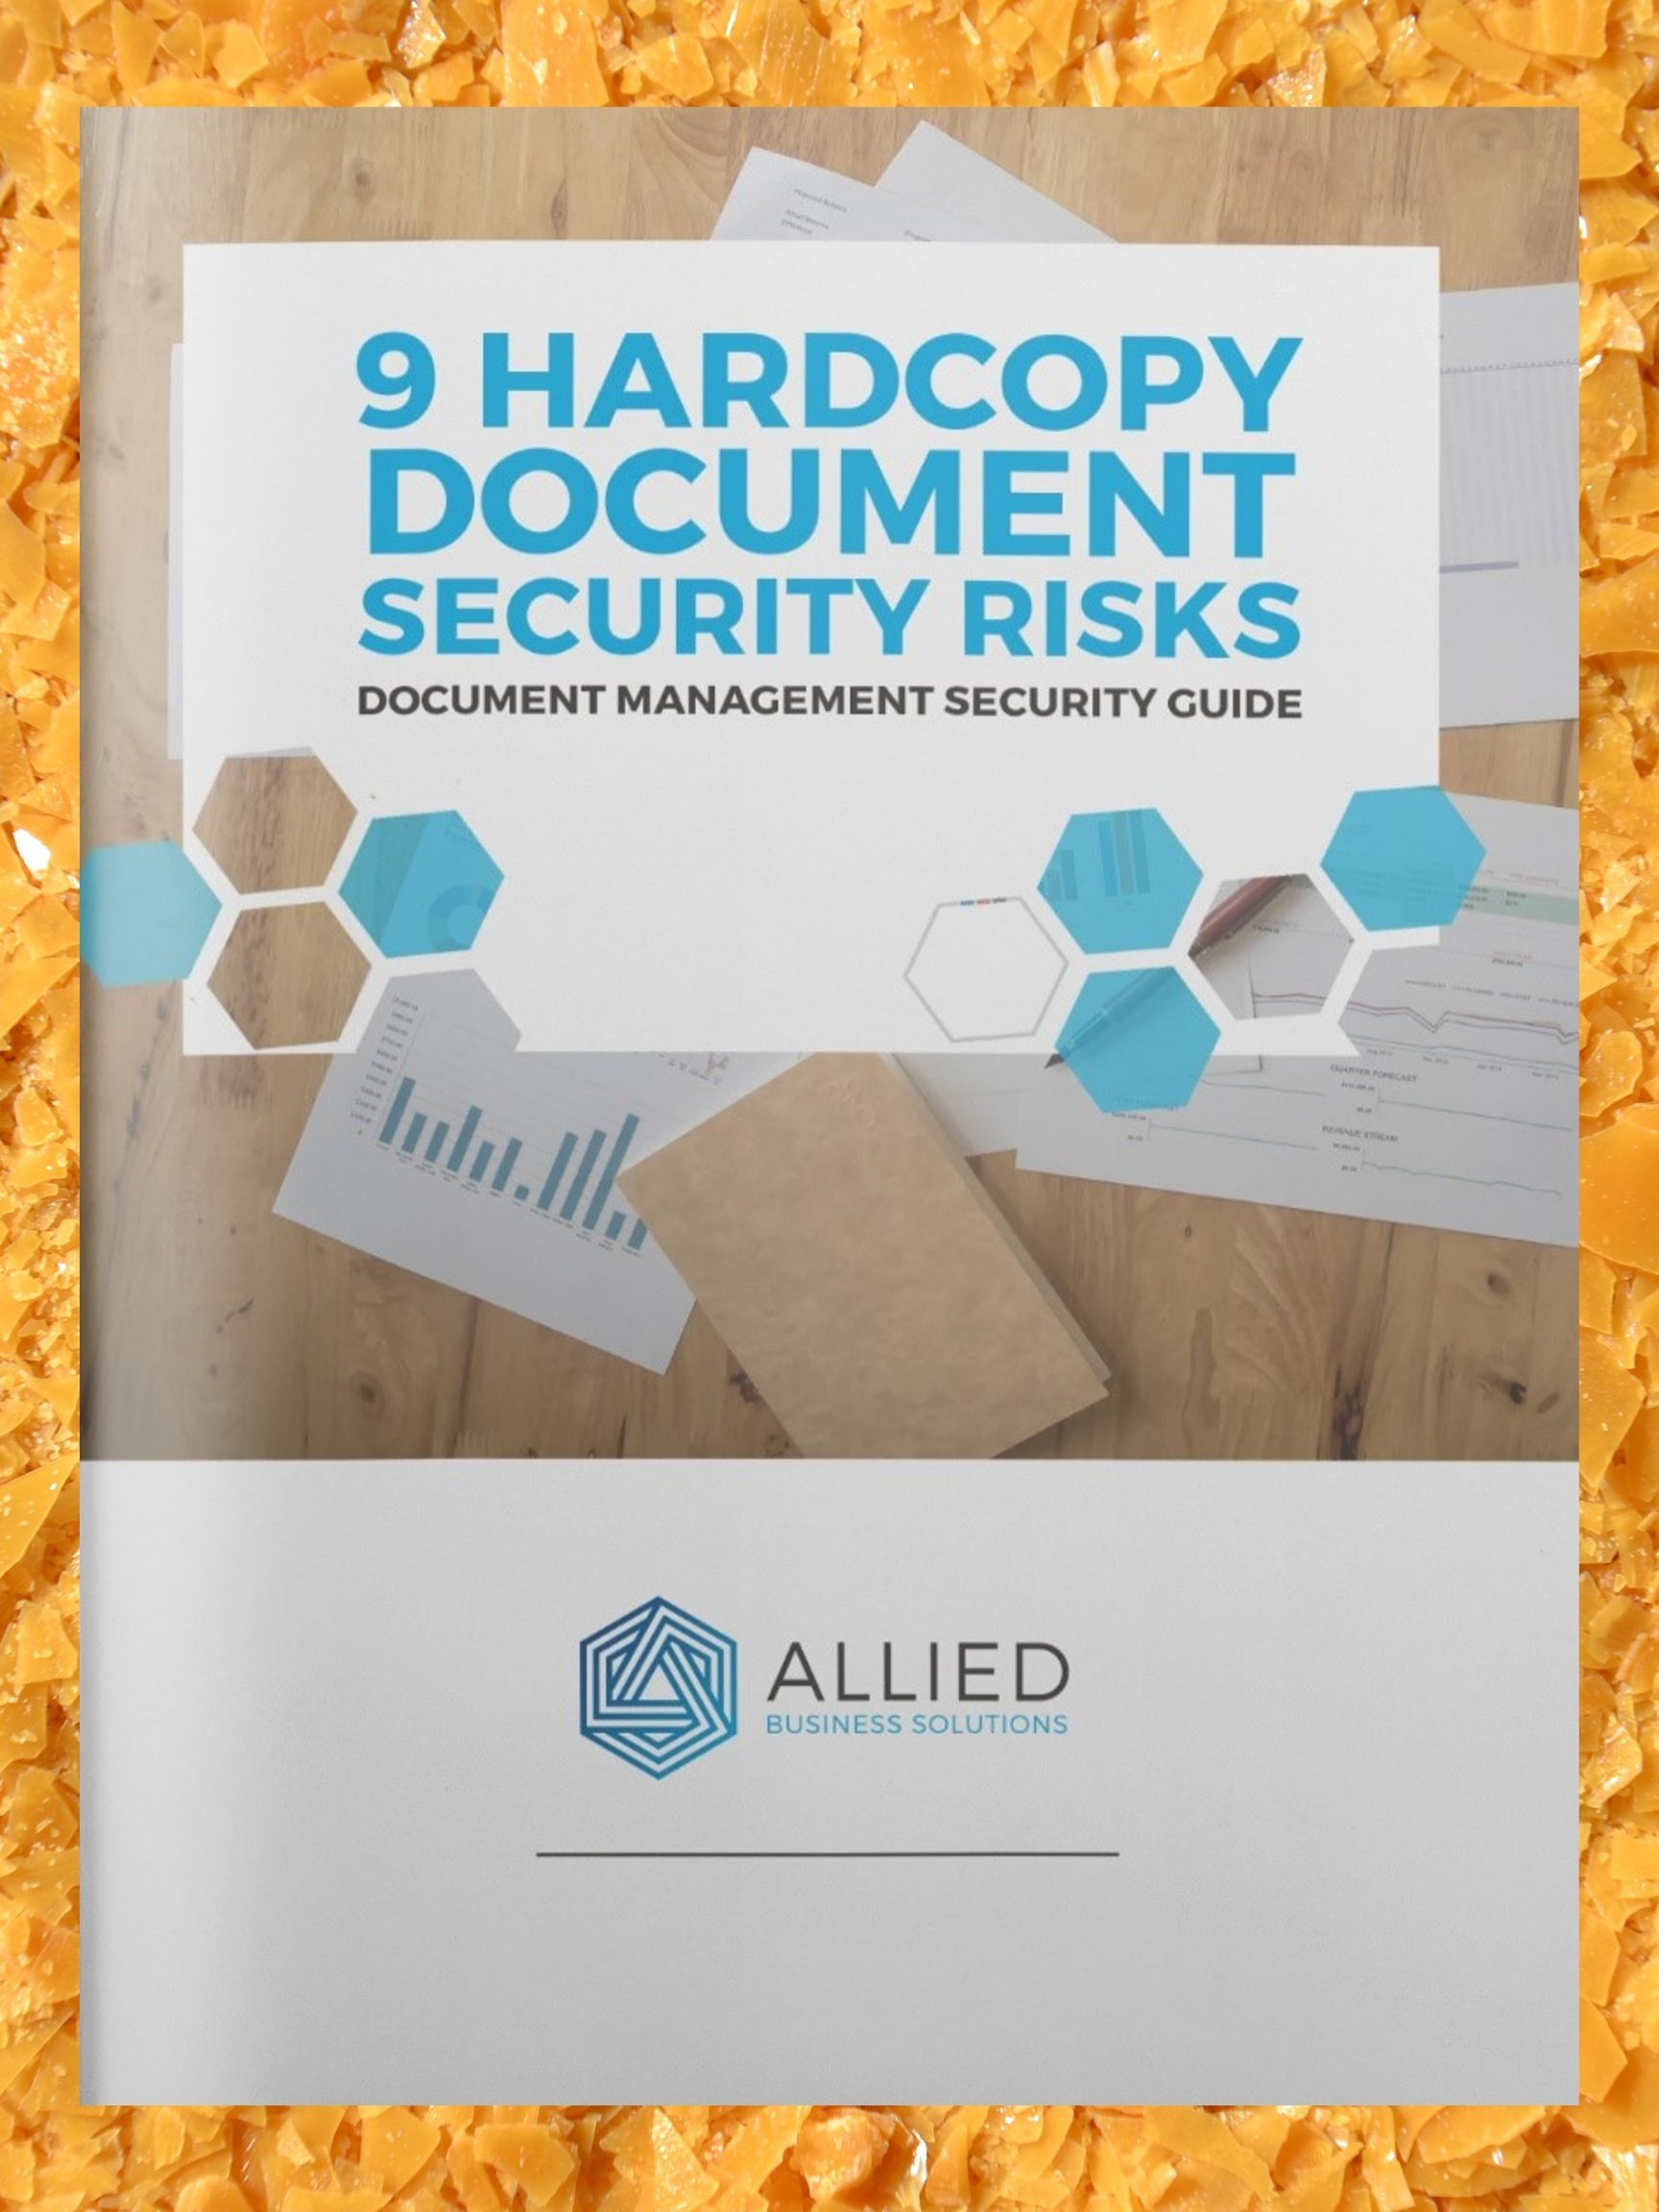 Hardcopy Document Security Risks